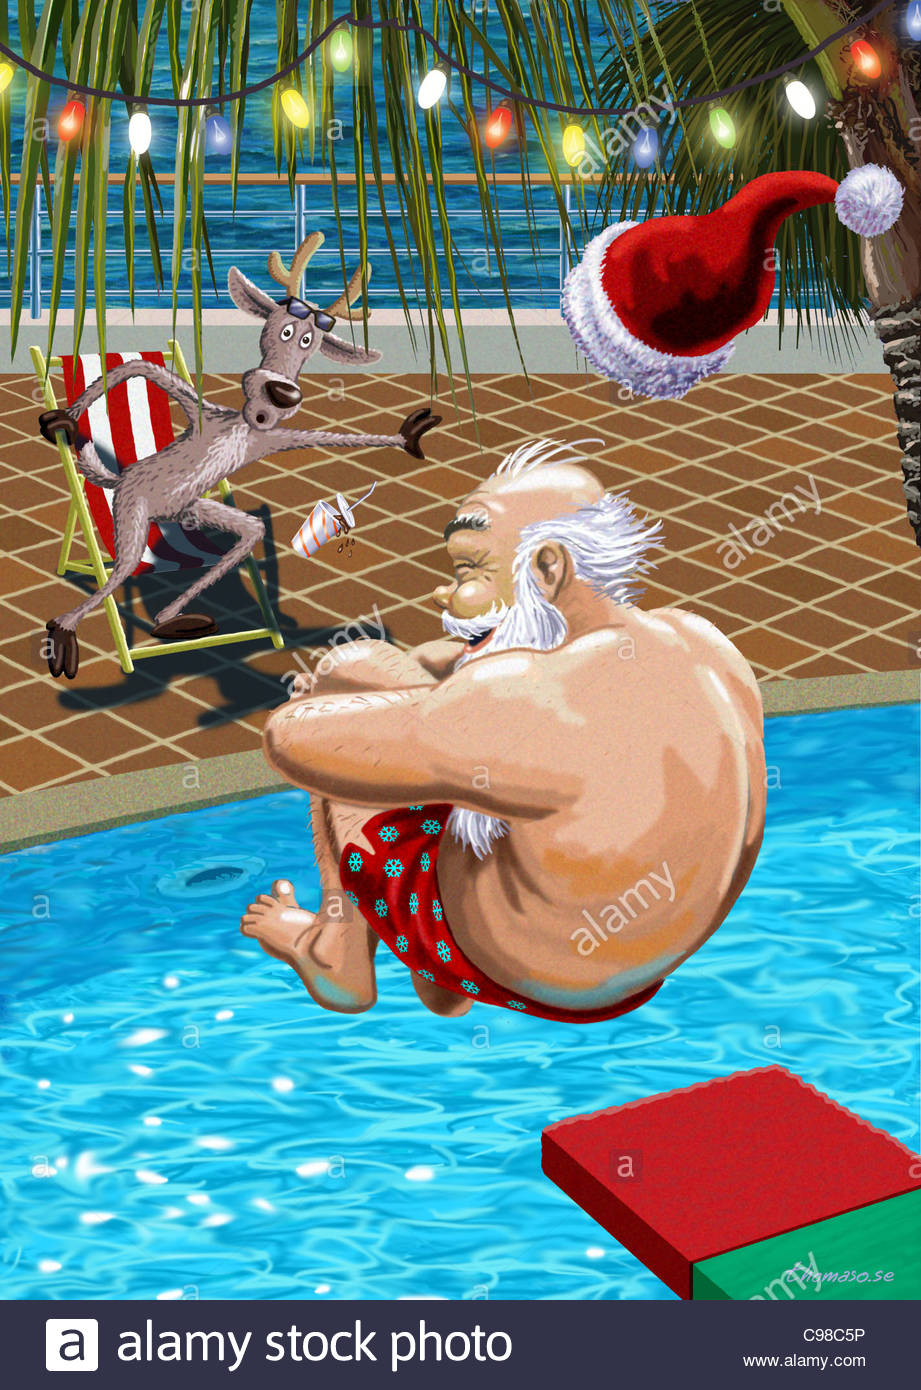 Santa Claus Jumps In The Pool Santa Claus Weihnachtsmaenner Santa Stock Photo 40137826 Alamy